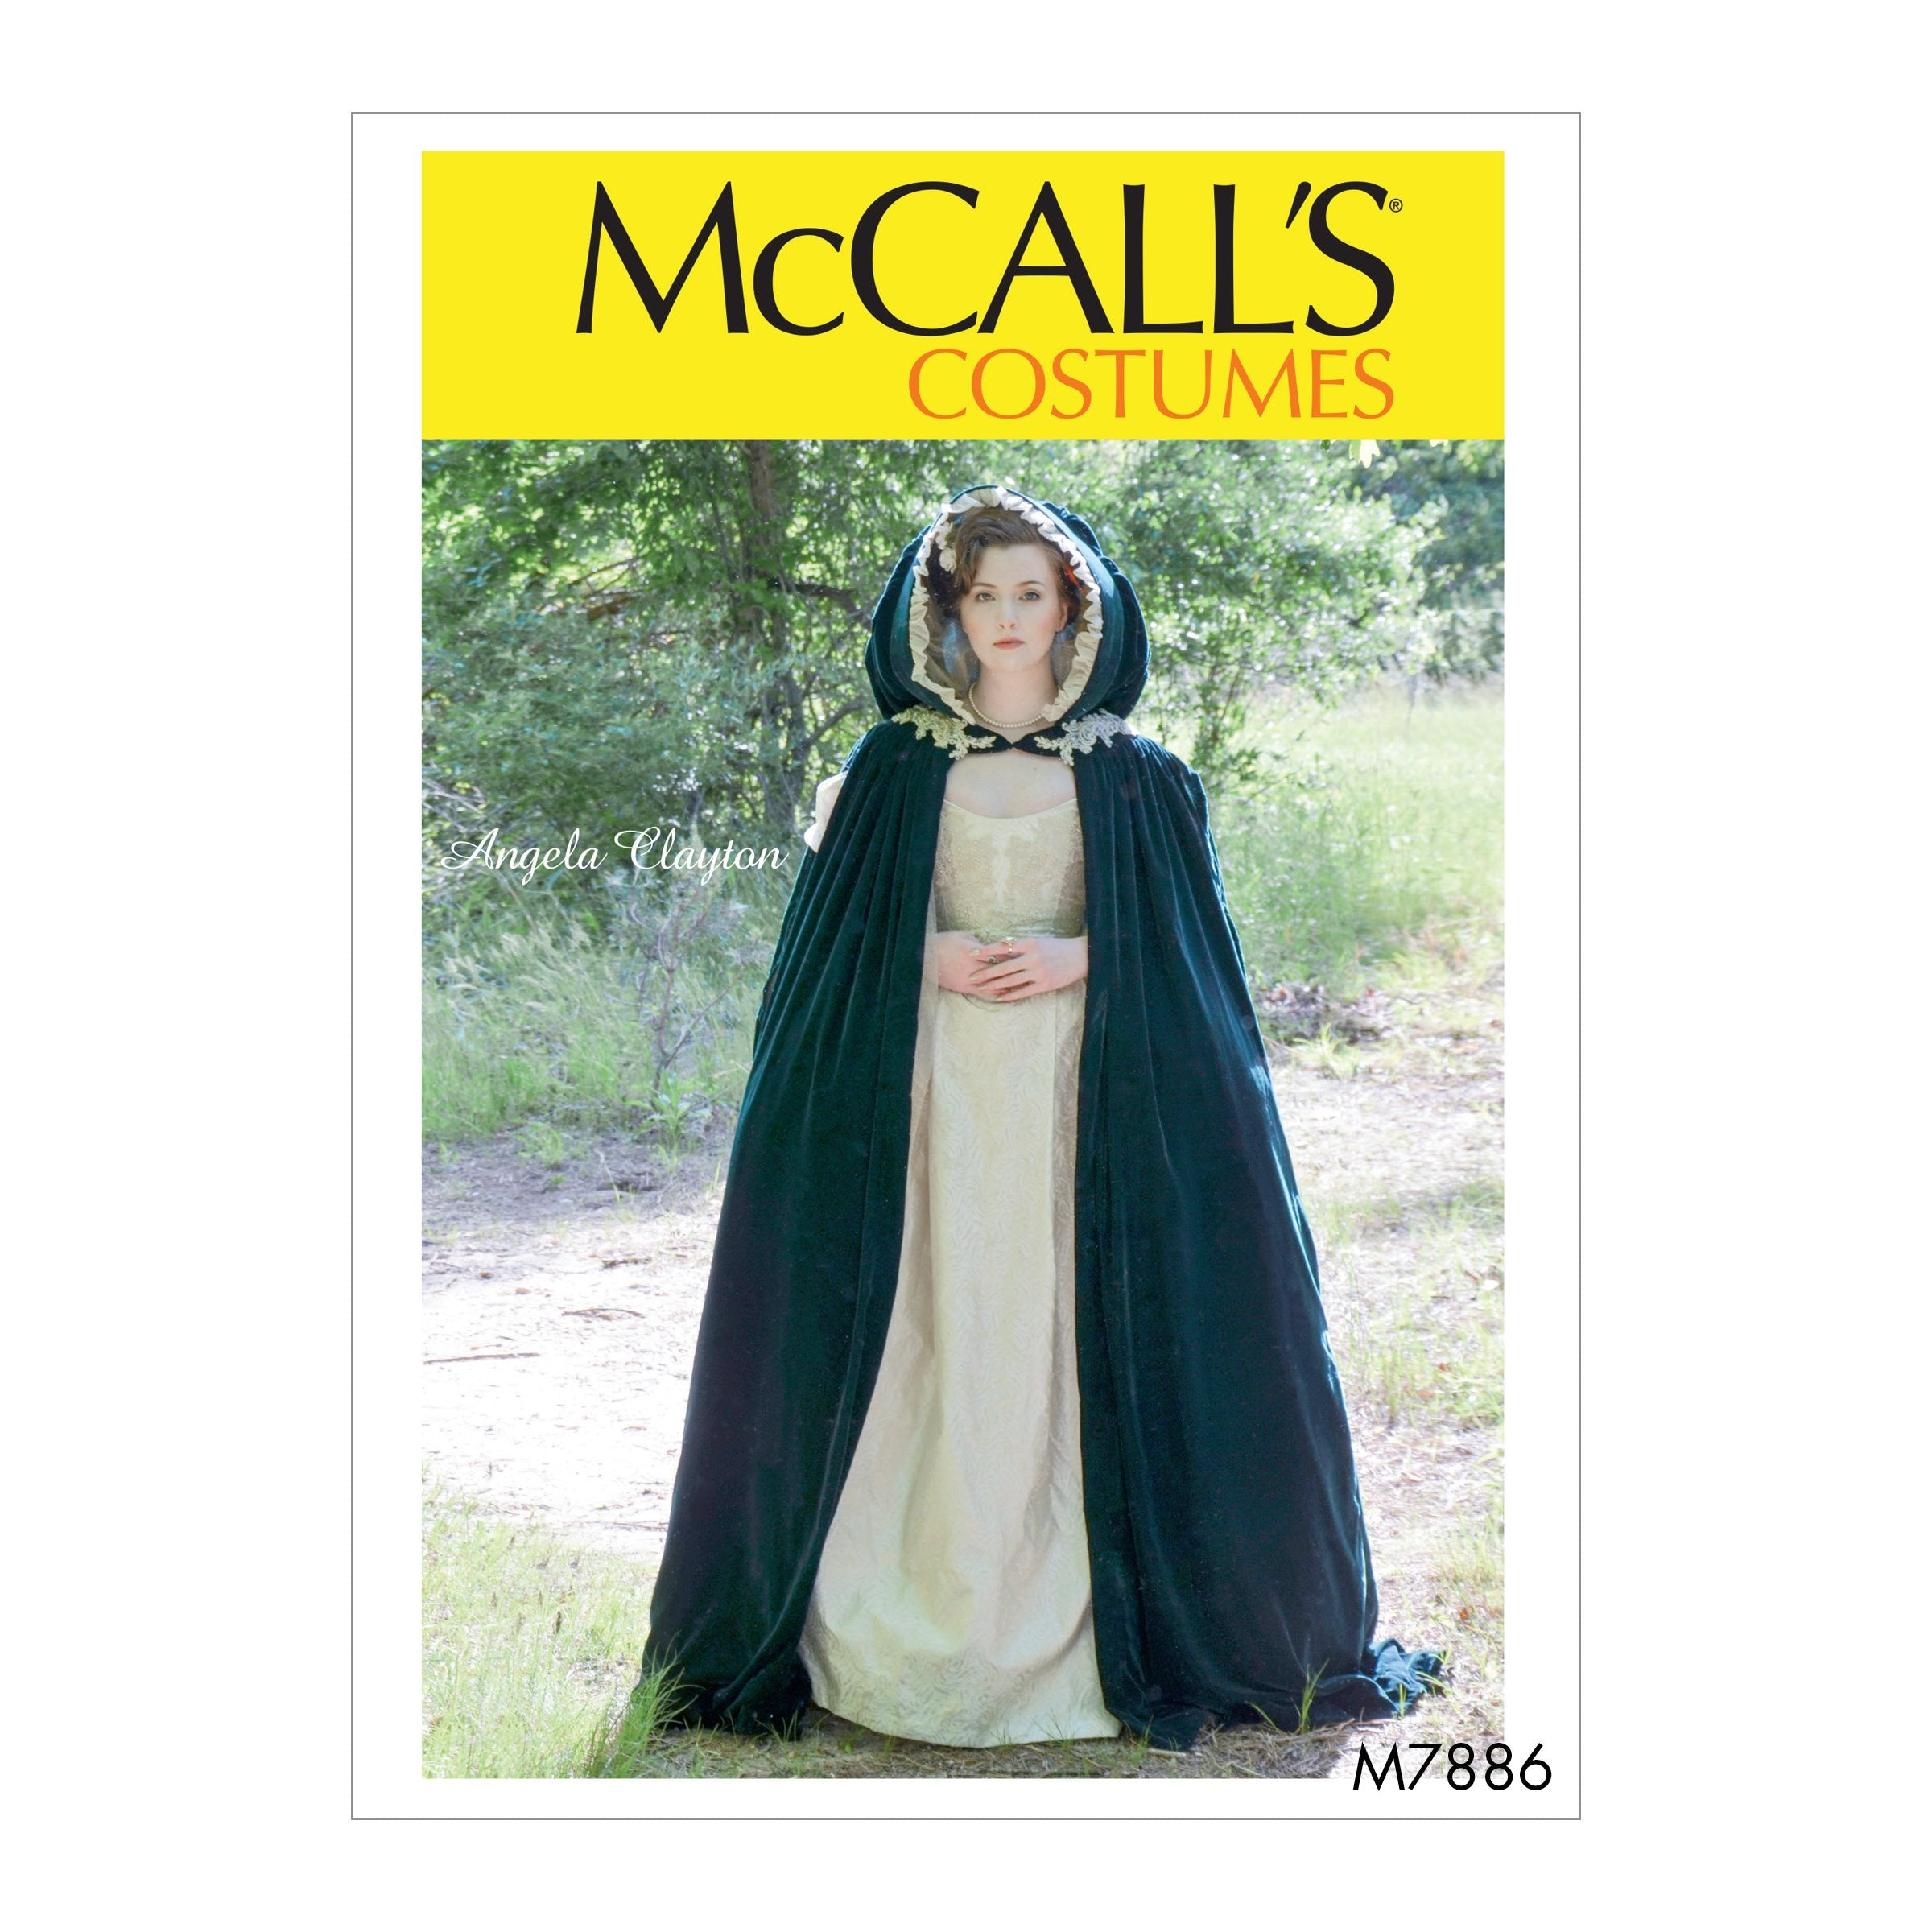 M7886 Misses' Historical Costume Sewing Pattern